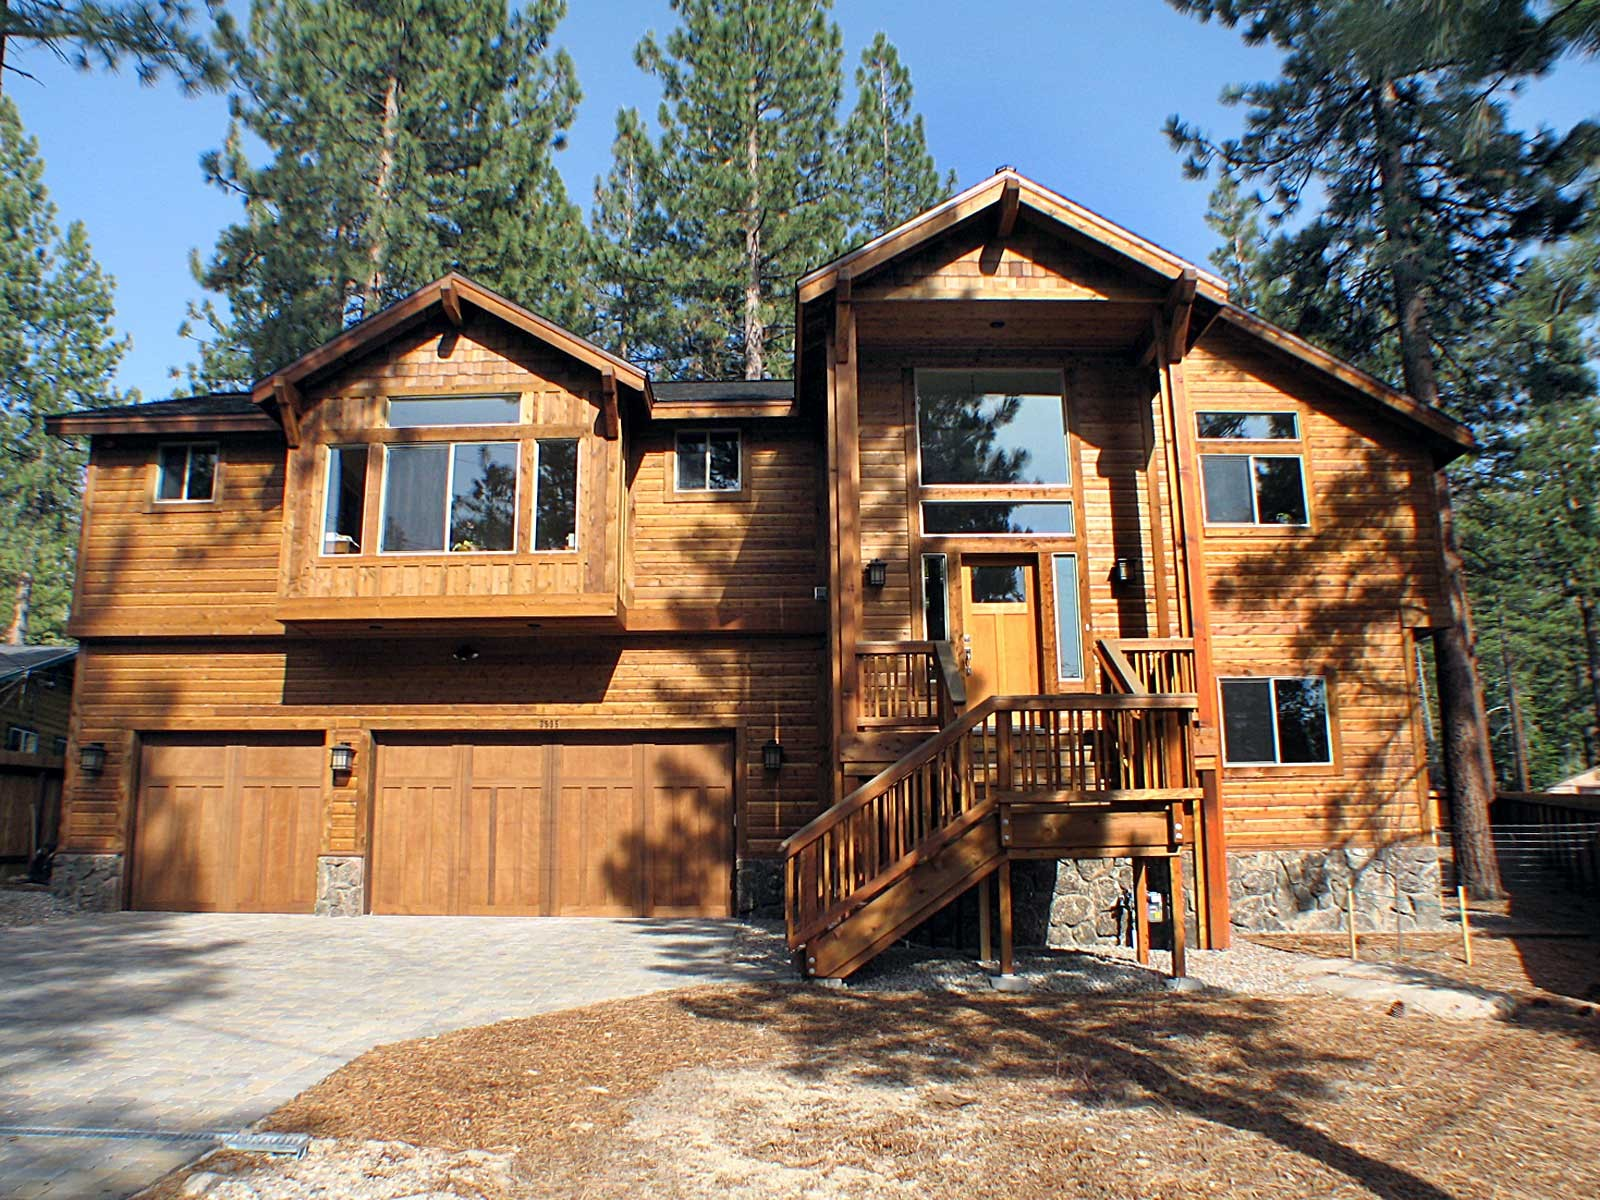 rentals with south lake birch gath tahoe l cabins living rental vacation spacious big properties for a room family sofa shape cabin